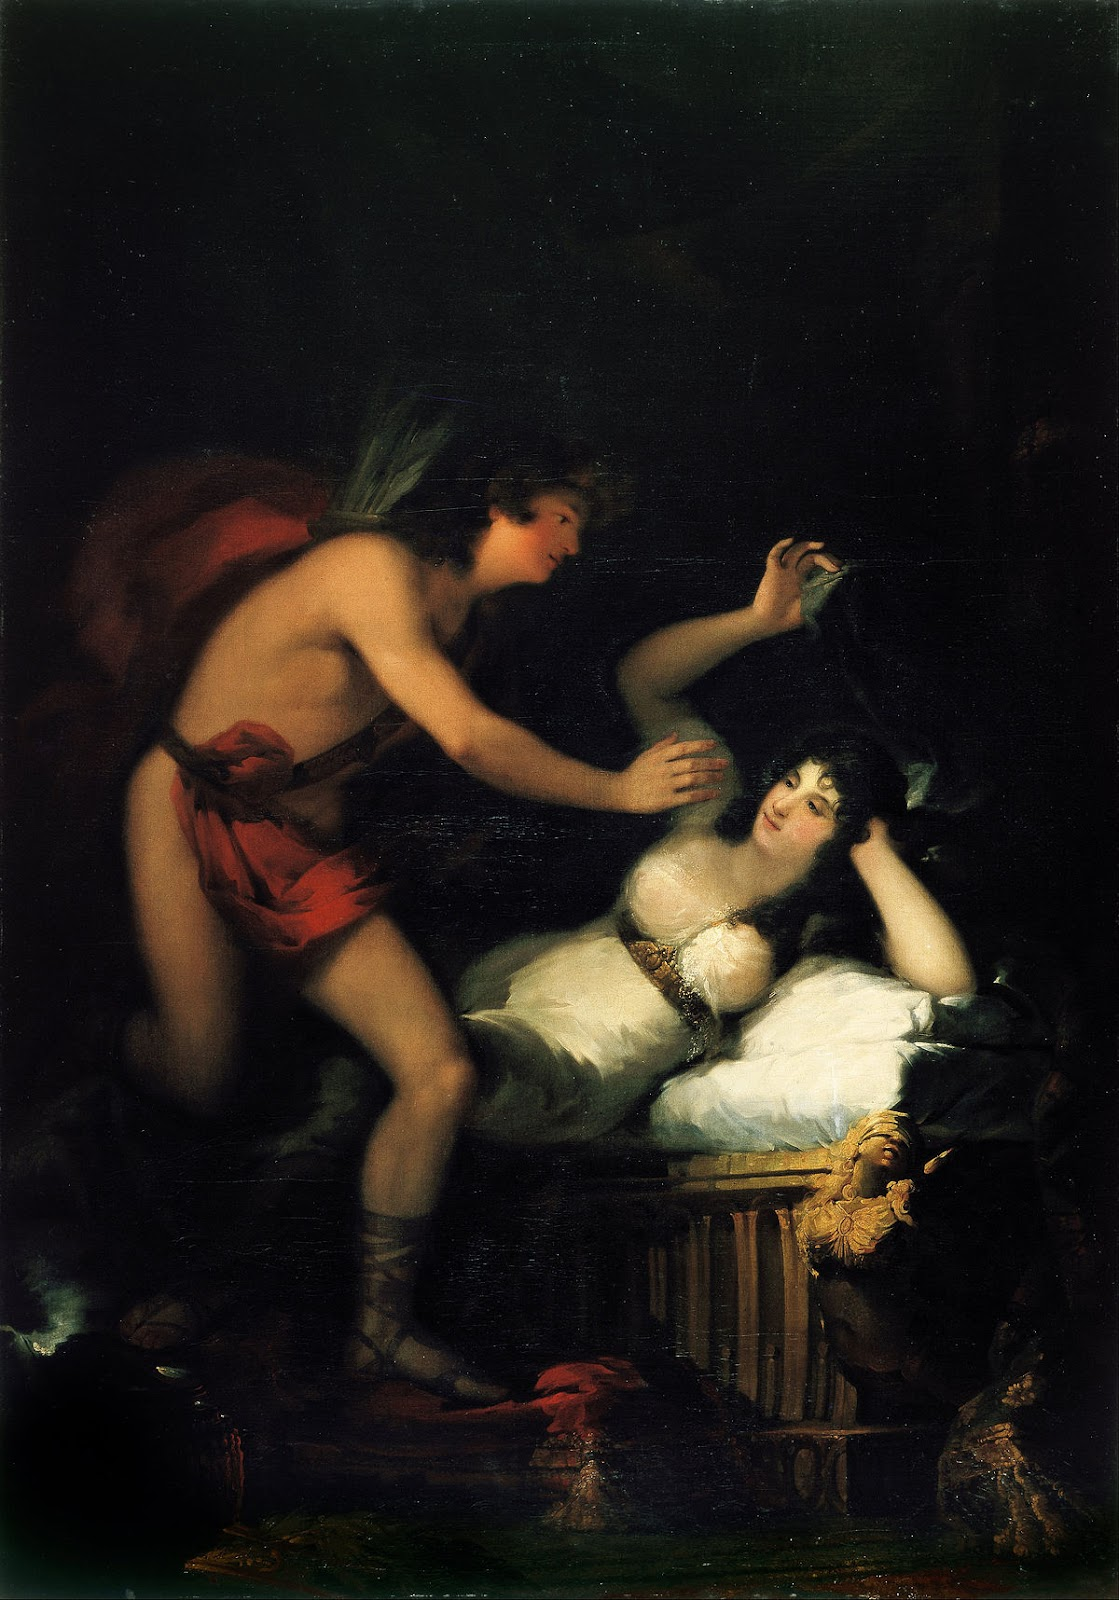 Goya's depiction of the Roman mythical love story of Cupid and Psyche. Francisco Goya, Allegory of Love, 1798-1805, Museu Nacional d'Art de Catalunya, Barcelona, Spain.